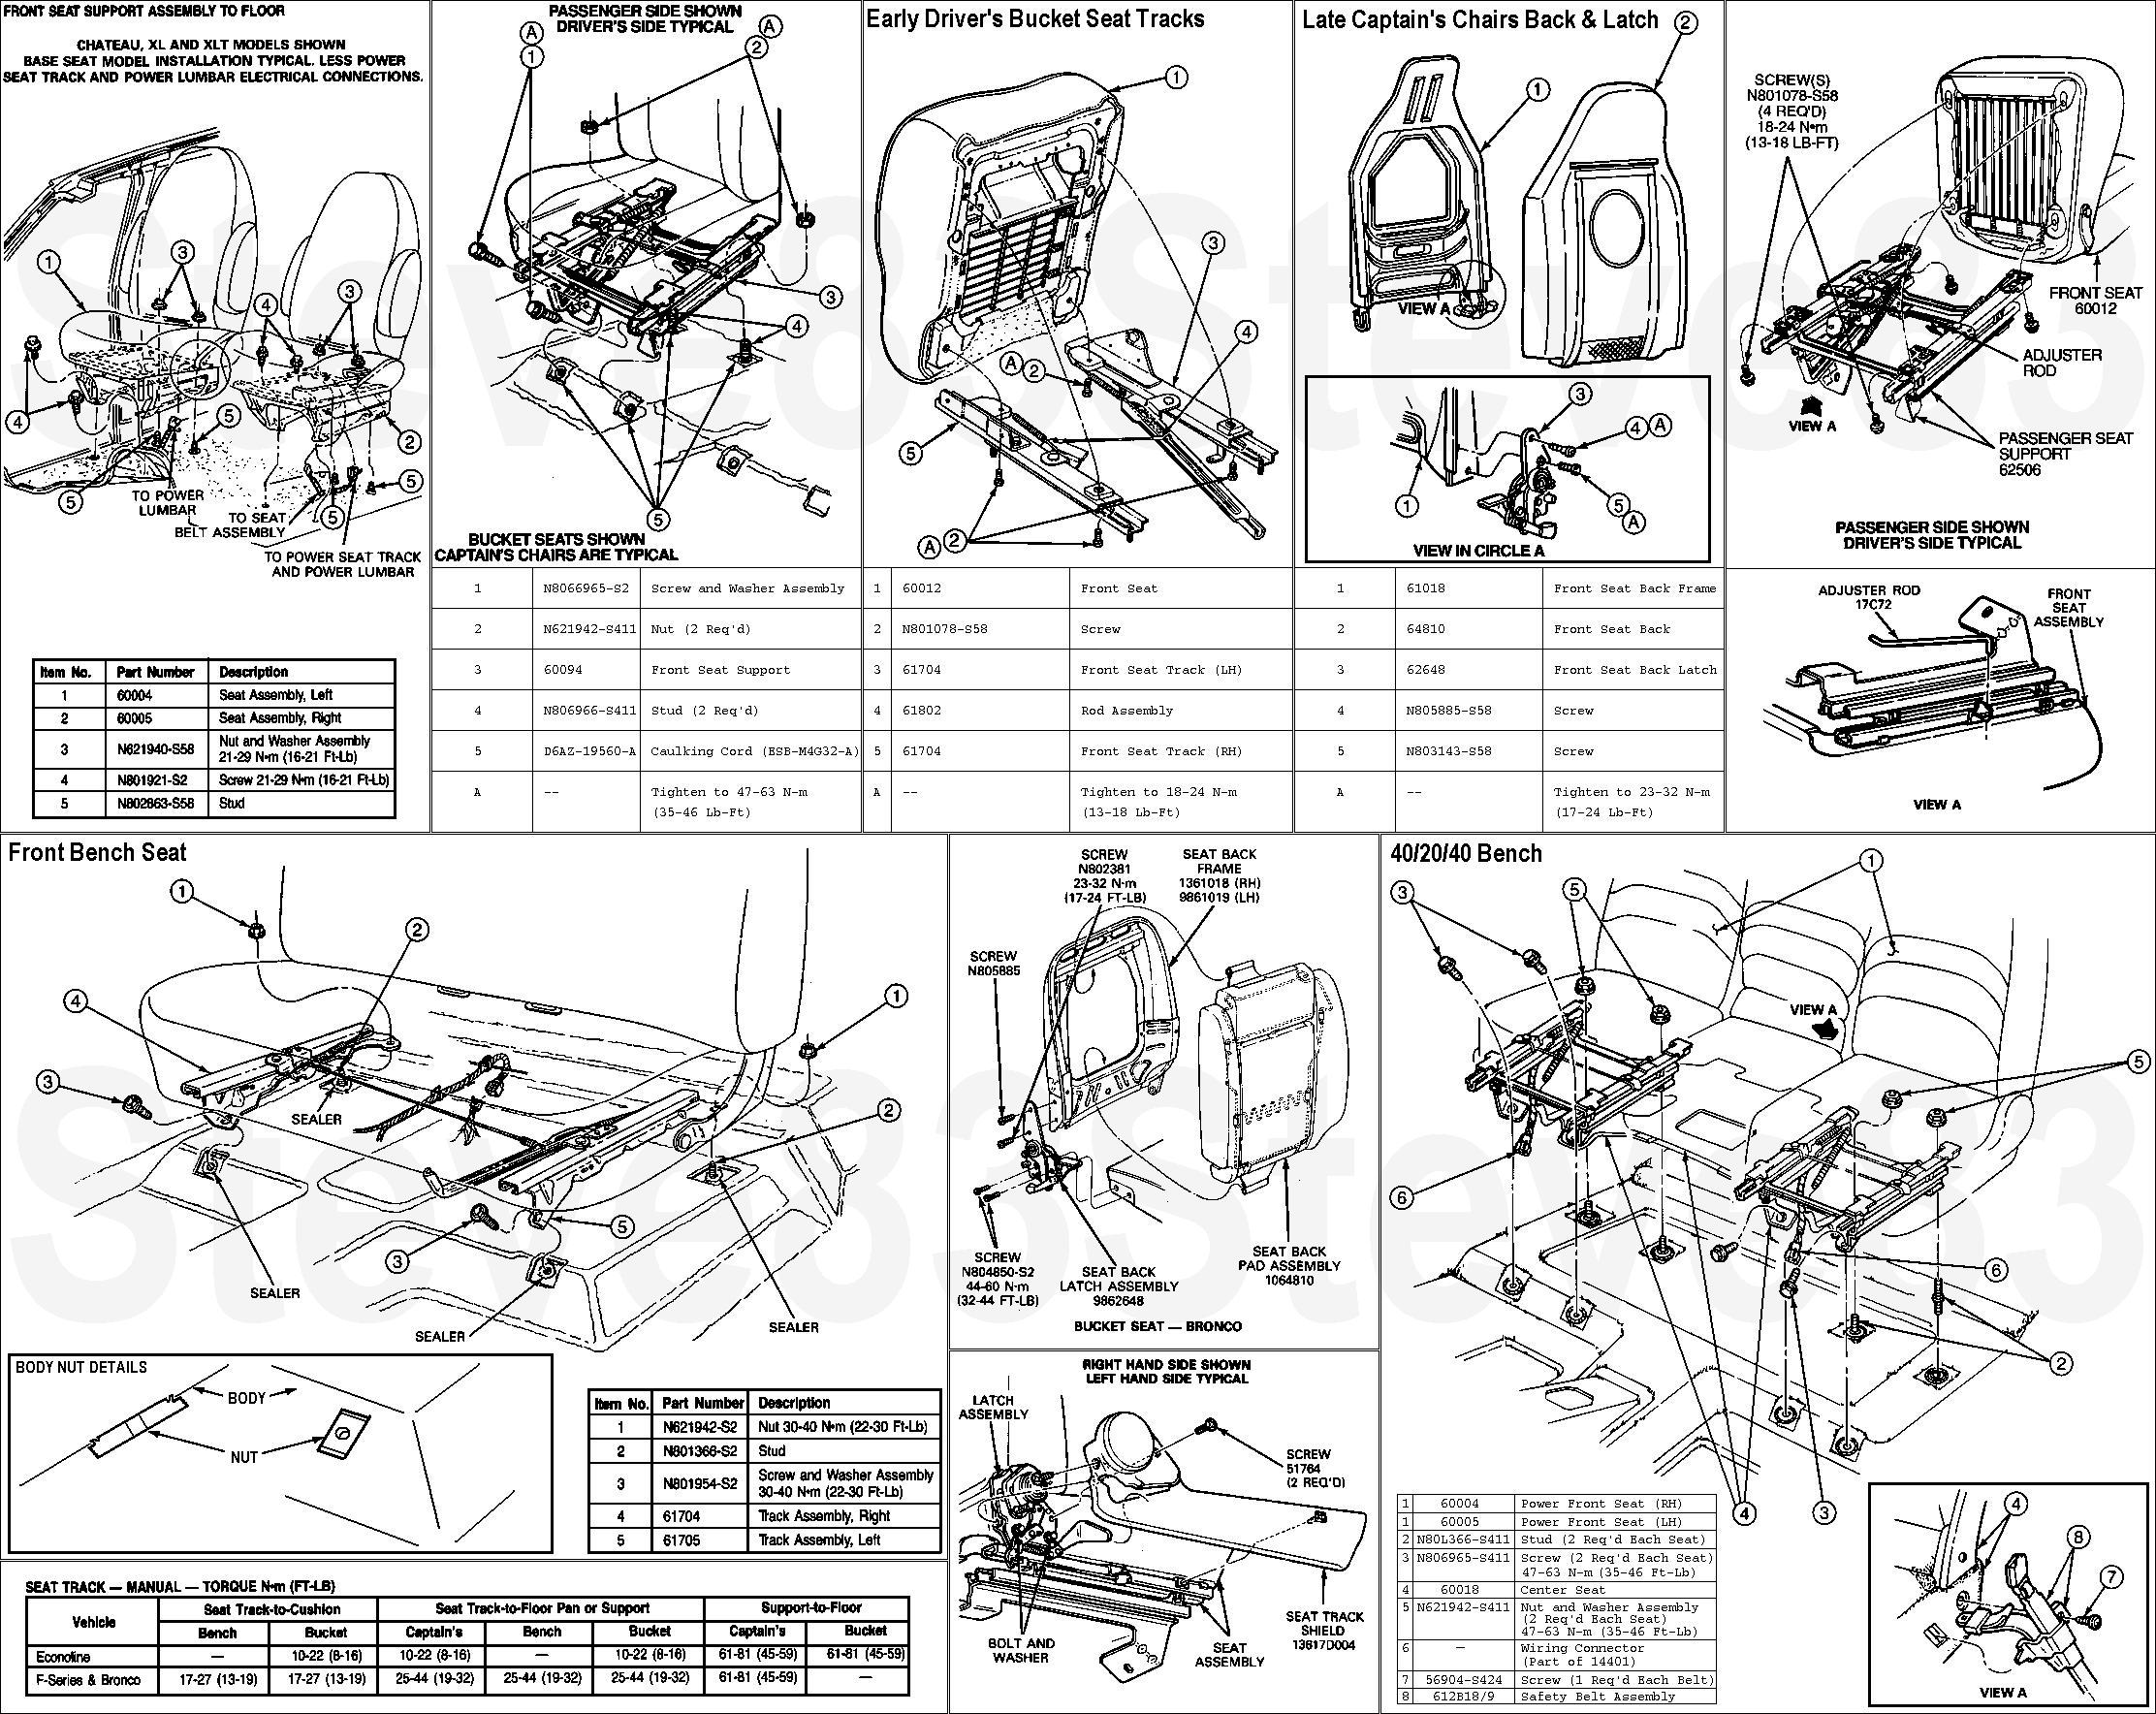 96 Ford Explorer Wiring Diagram, 96, Free Engine Image For